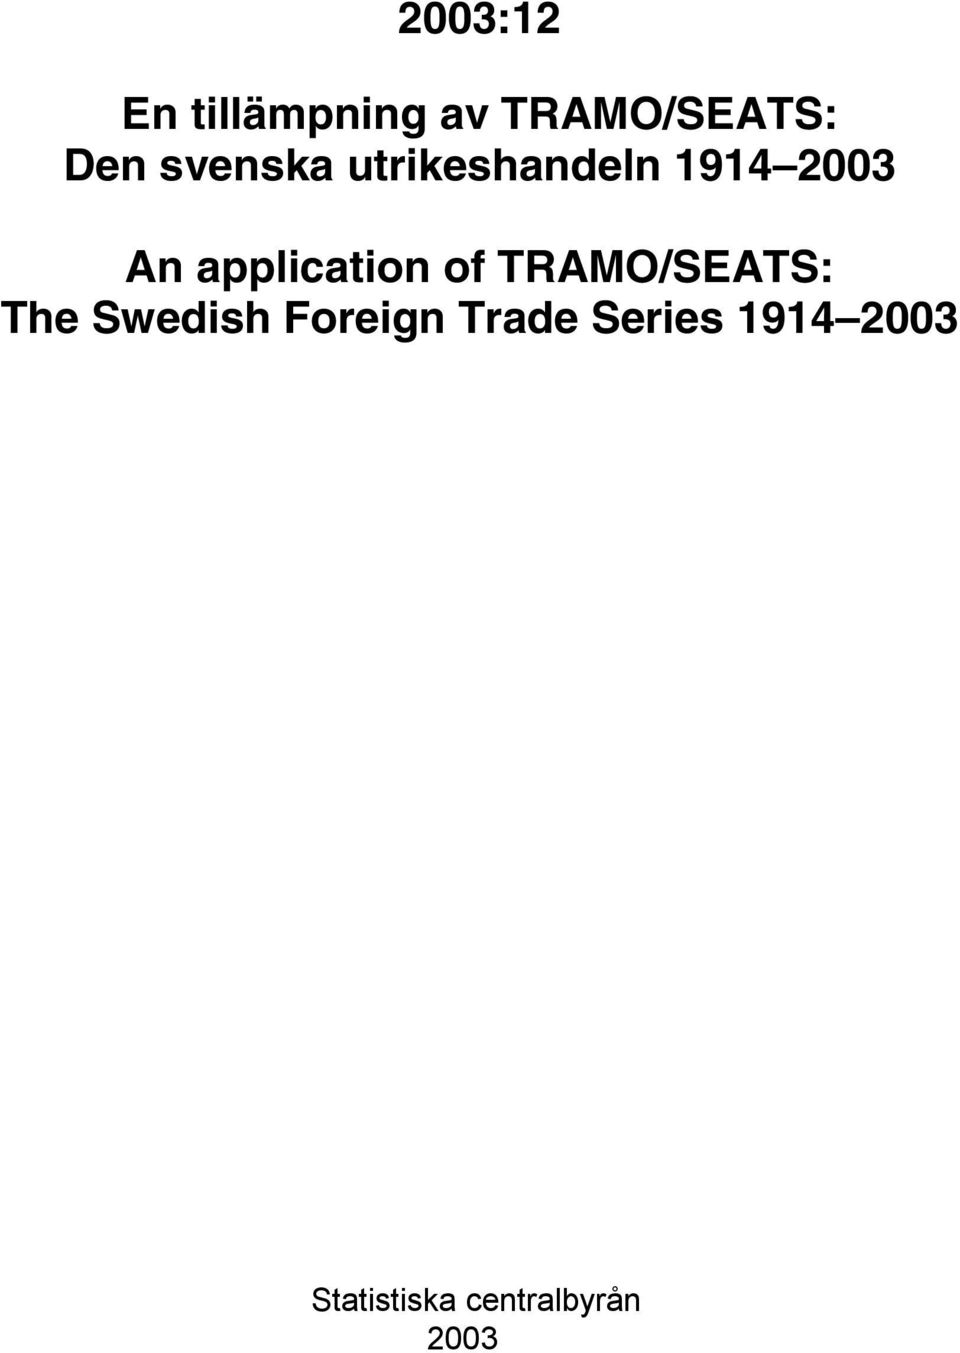 applicaion of TRAMO/SEATS: The Swedish